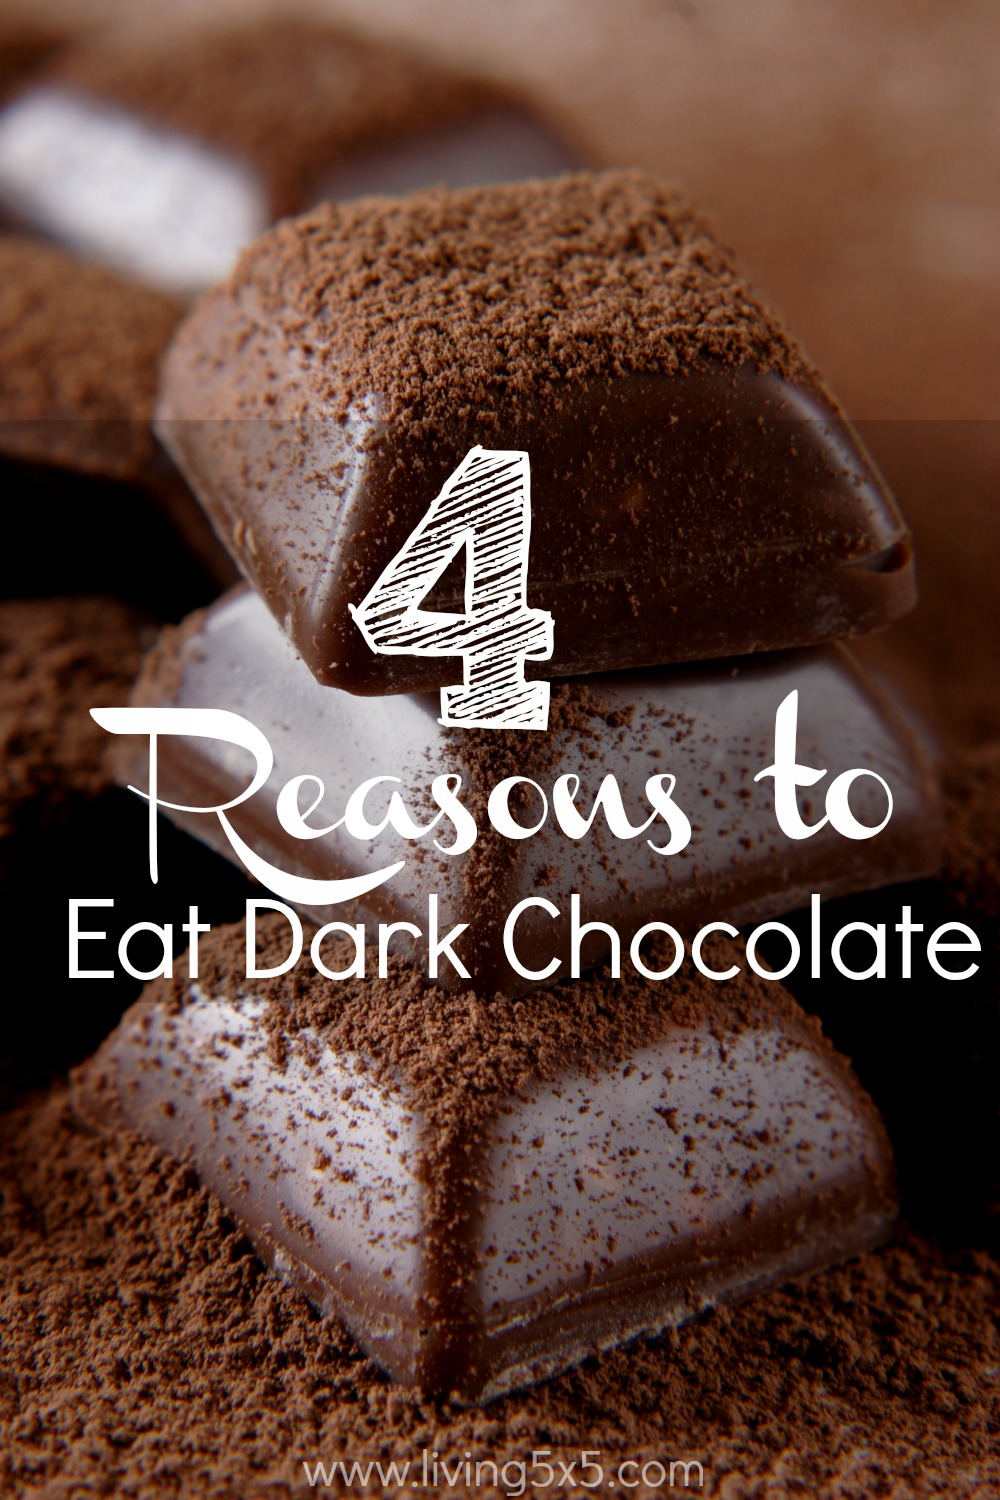 Did you know there are benefits of dark chocolate? Learn the facts behind it, and enjoy a bar or two guilt free.